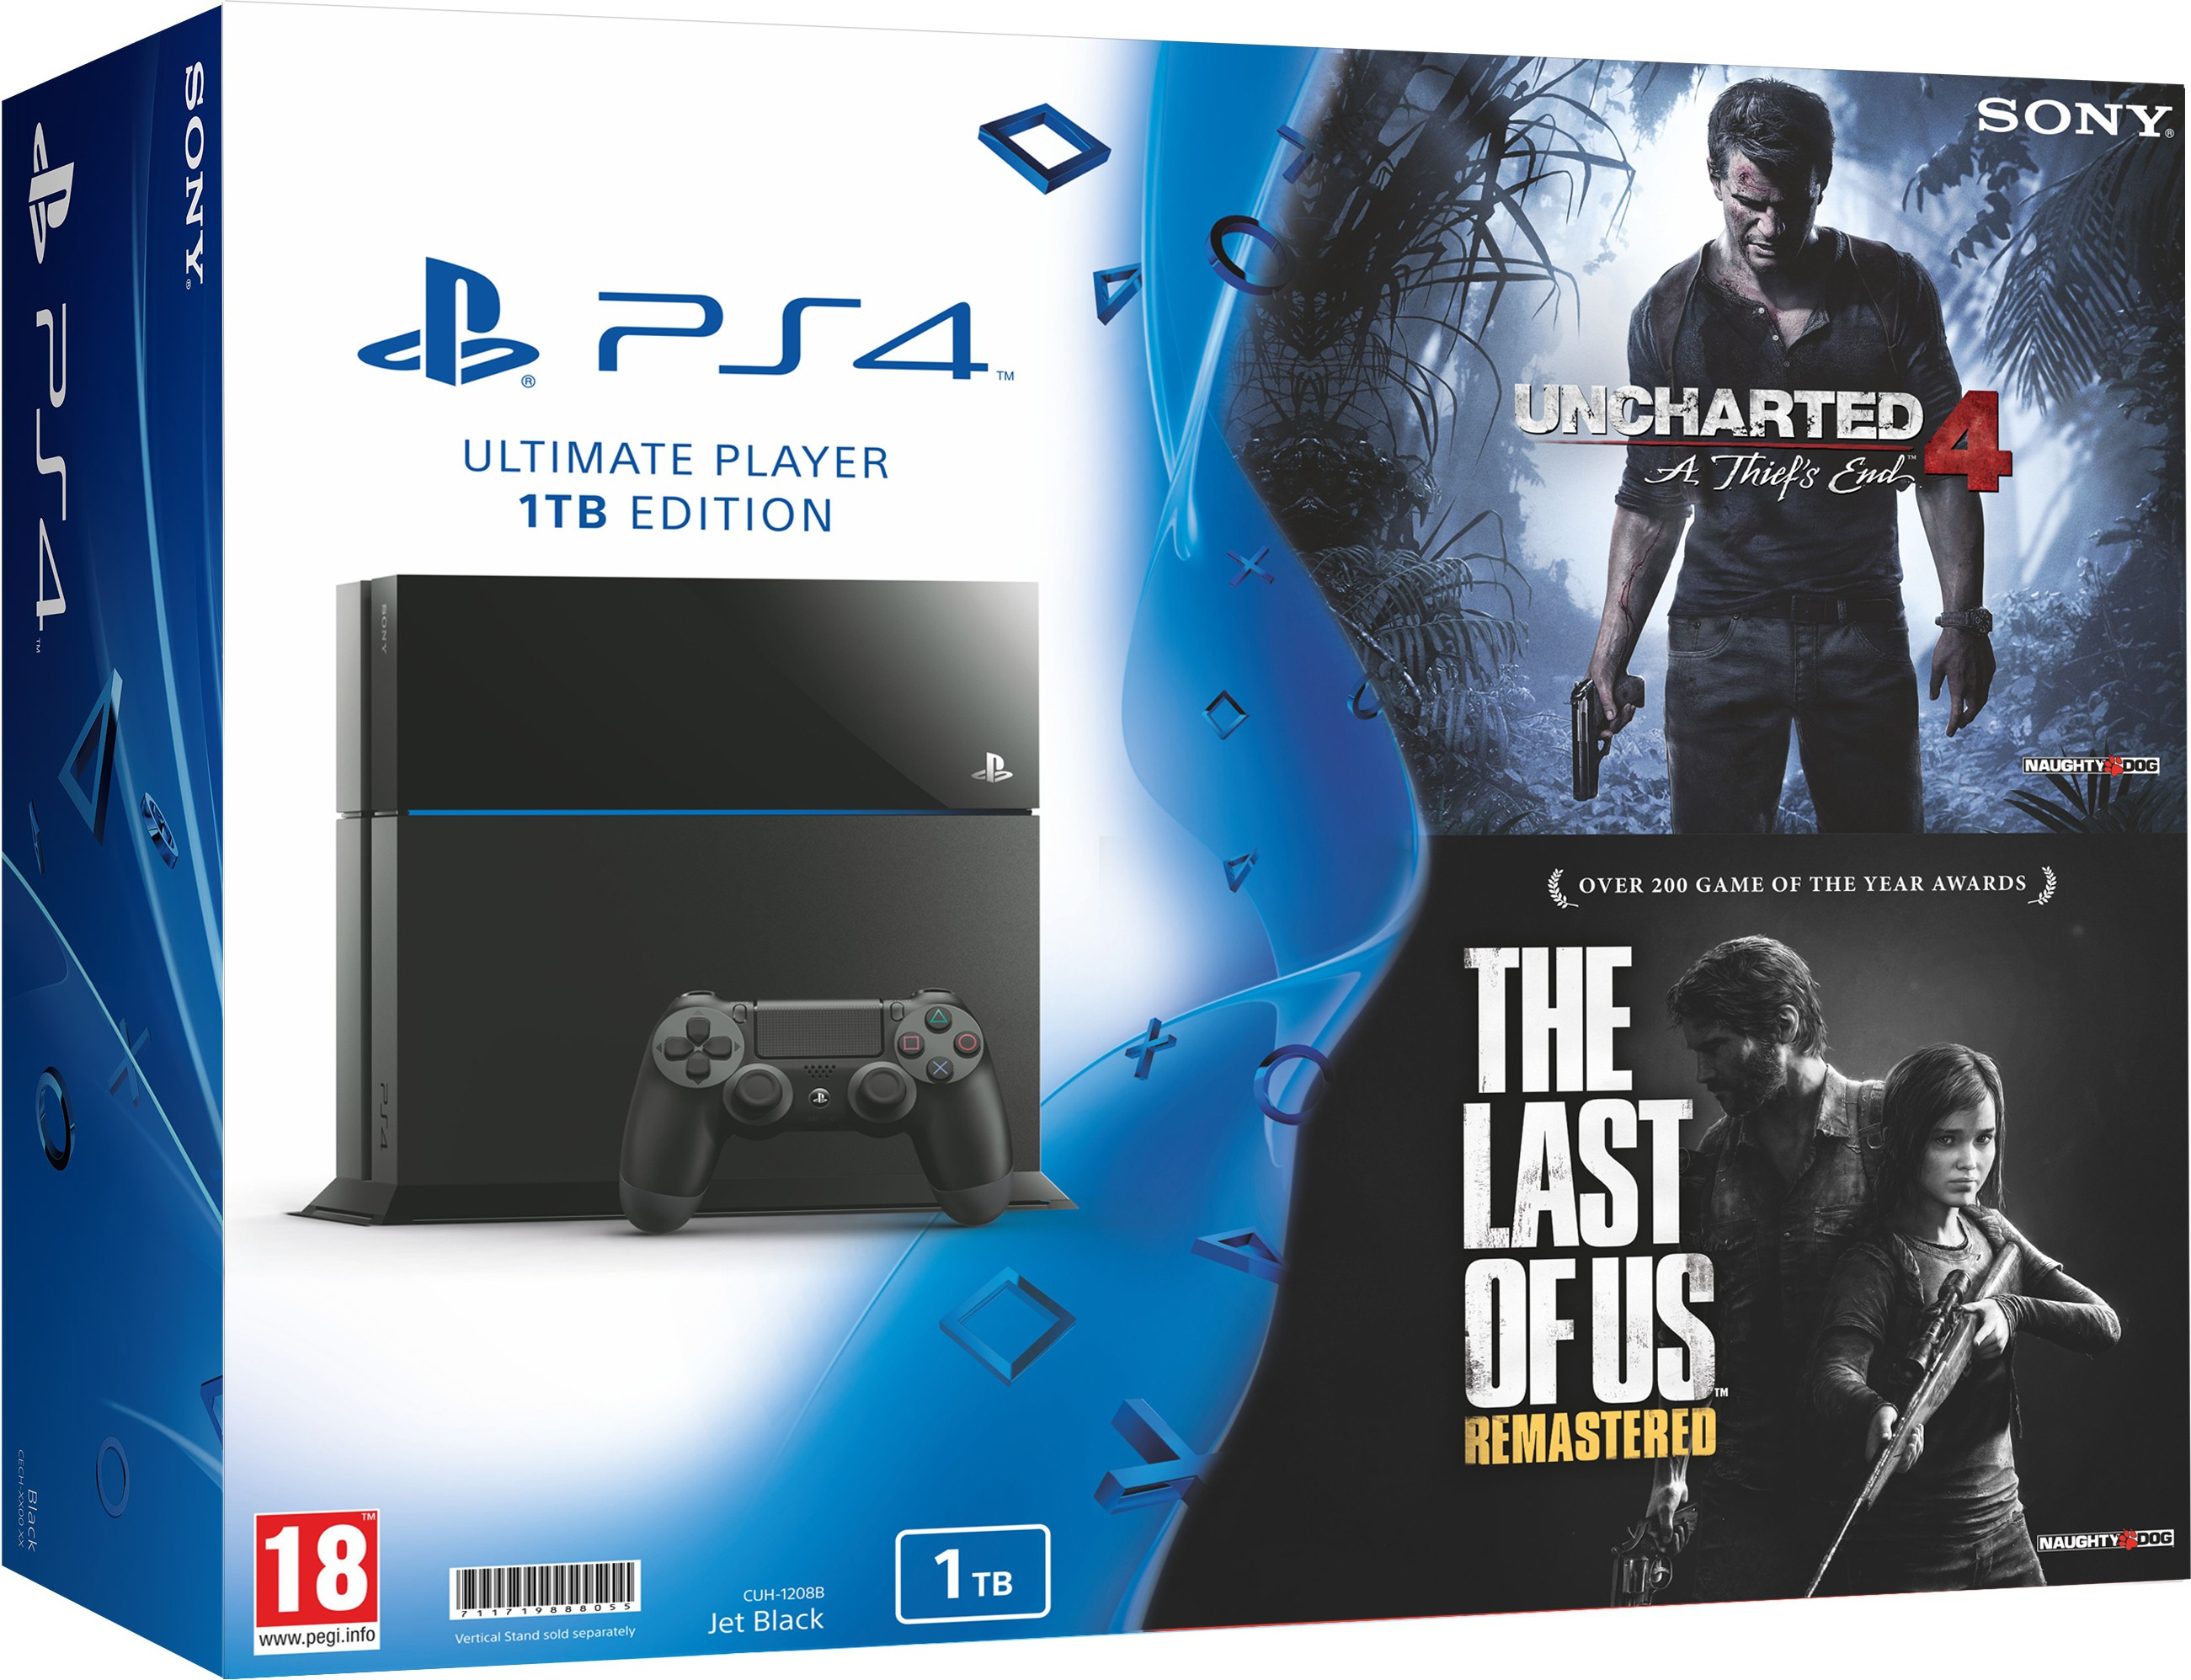 Deals | Sony PS4 Consoles Starting from ₹25,668